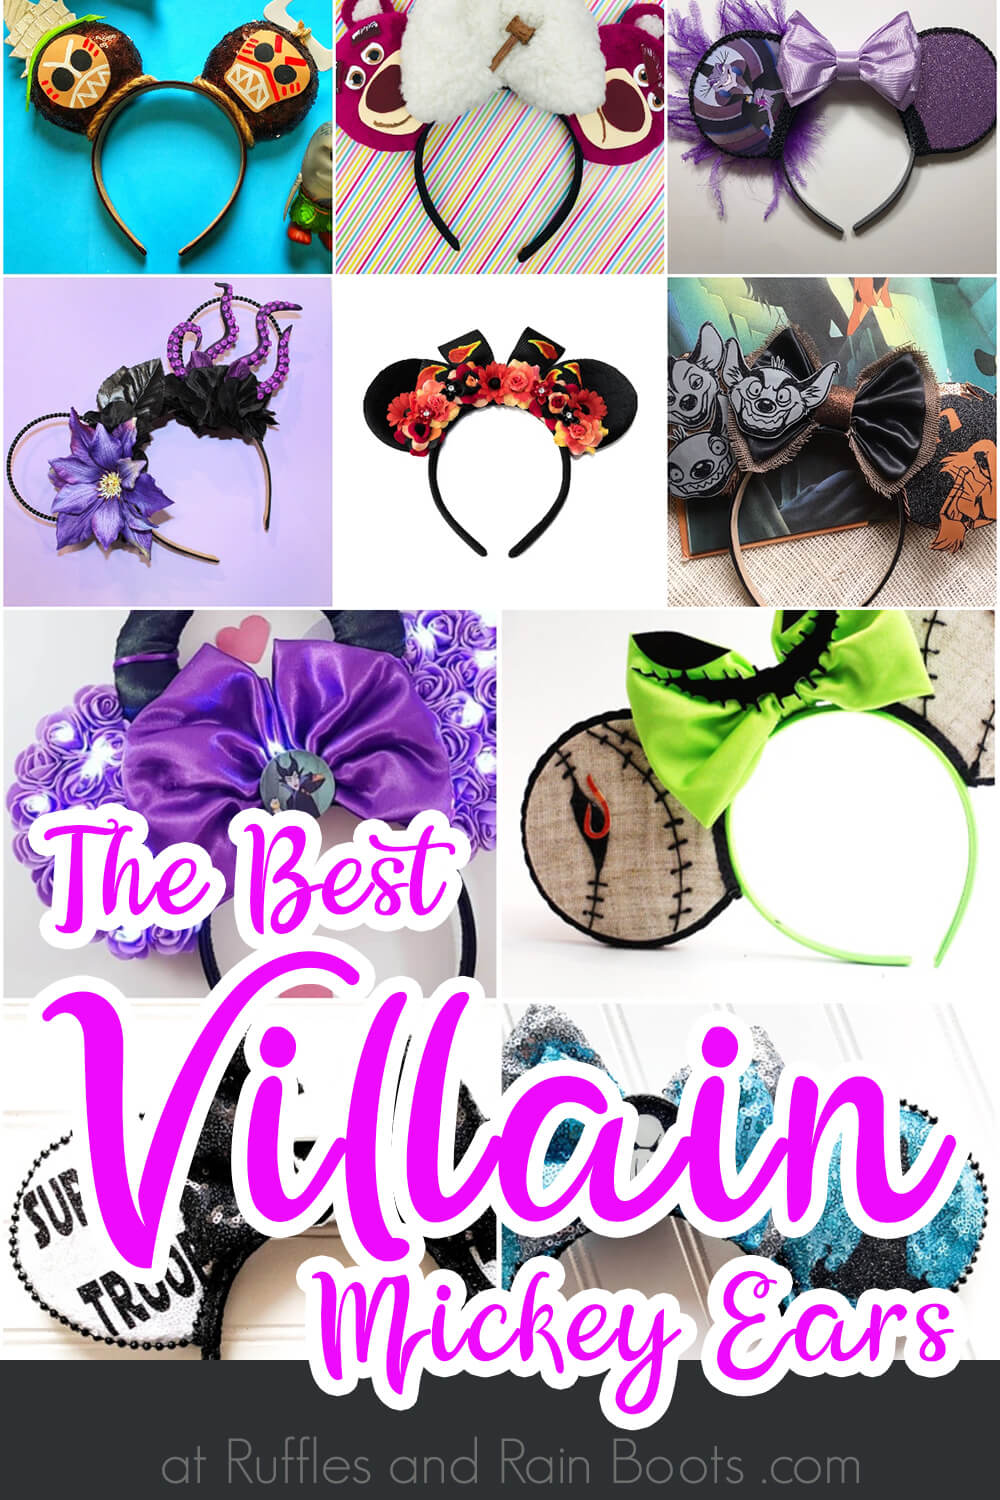 photo collage with text which reads the best villain mickey ears